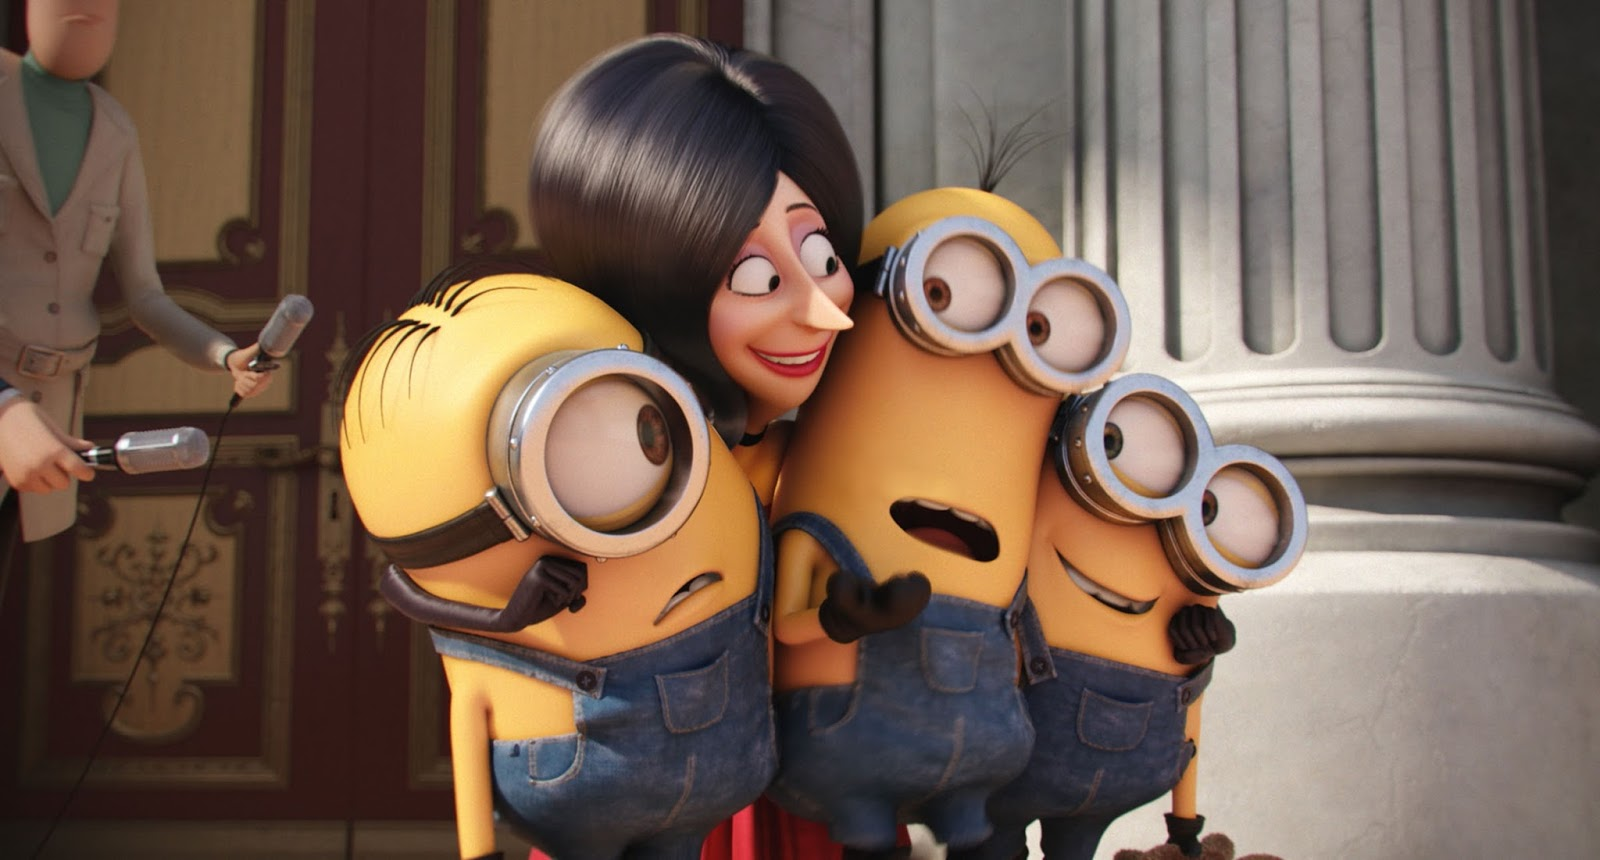 Minions movie characters